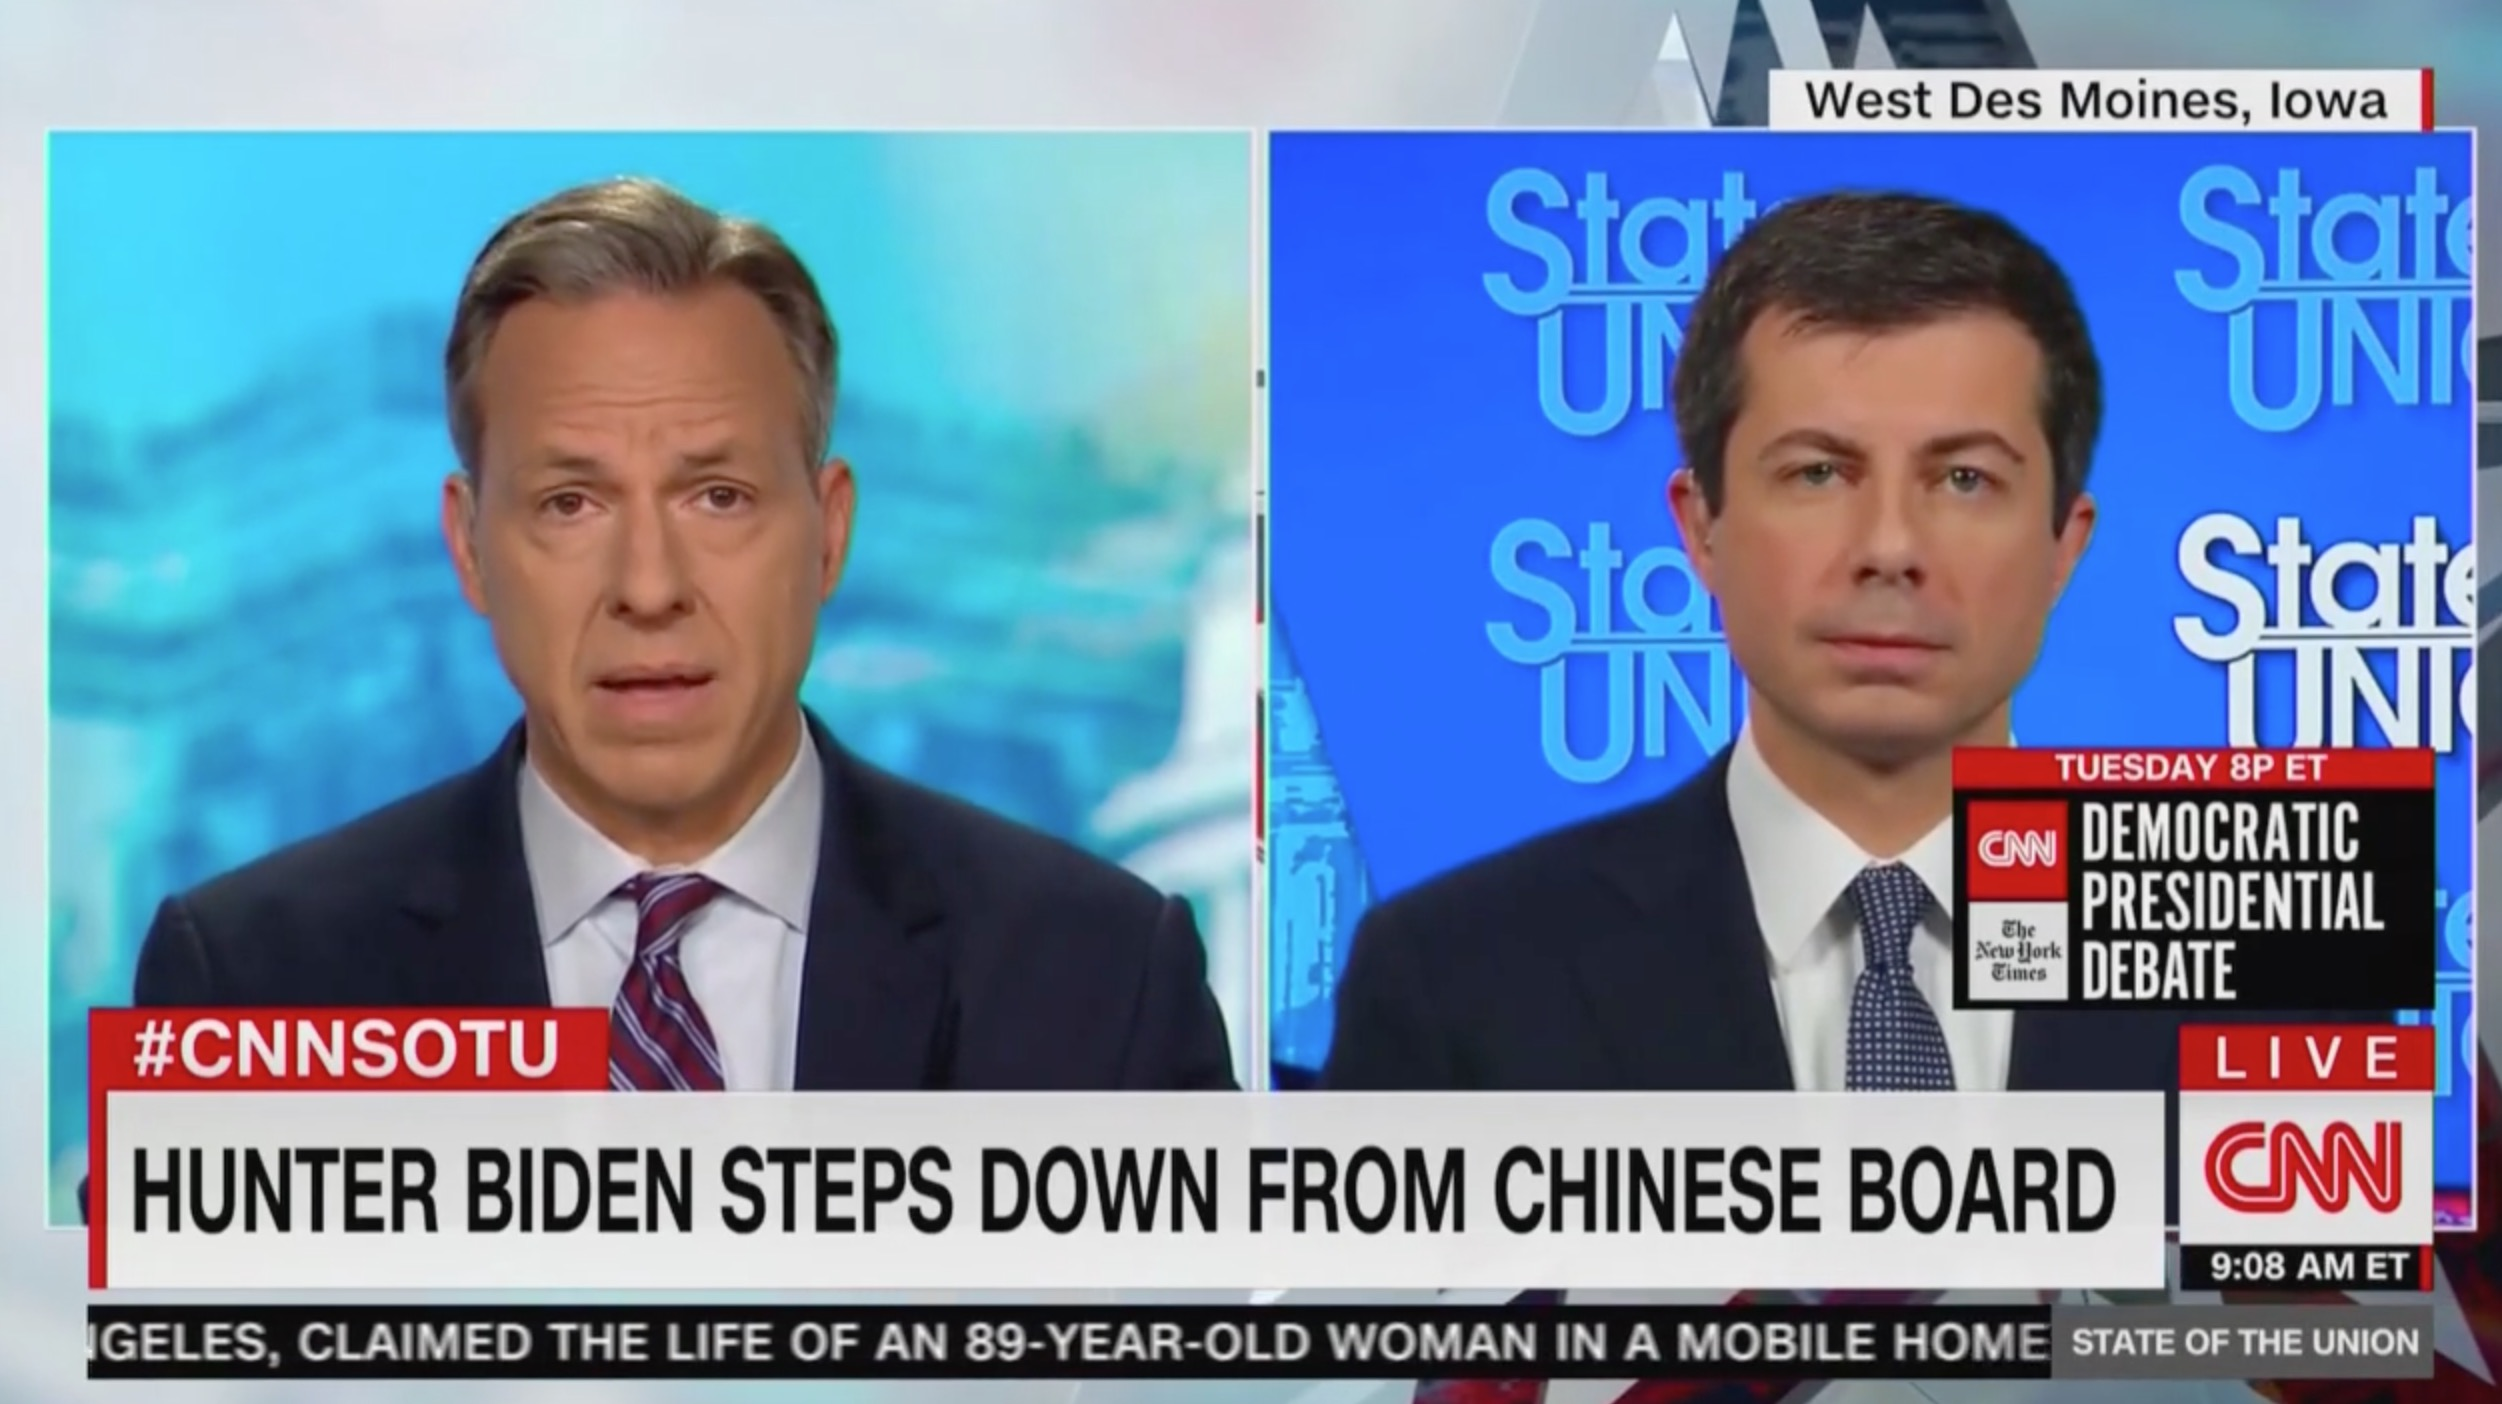 Jake Tapper: Is Hunter Biden's Resignation from Chinese Firm 'Tacit Acknowledgement' of Troubling Optics?